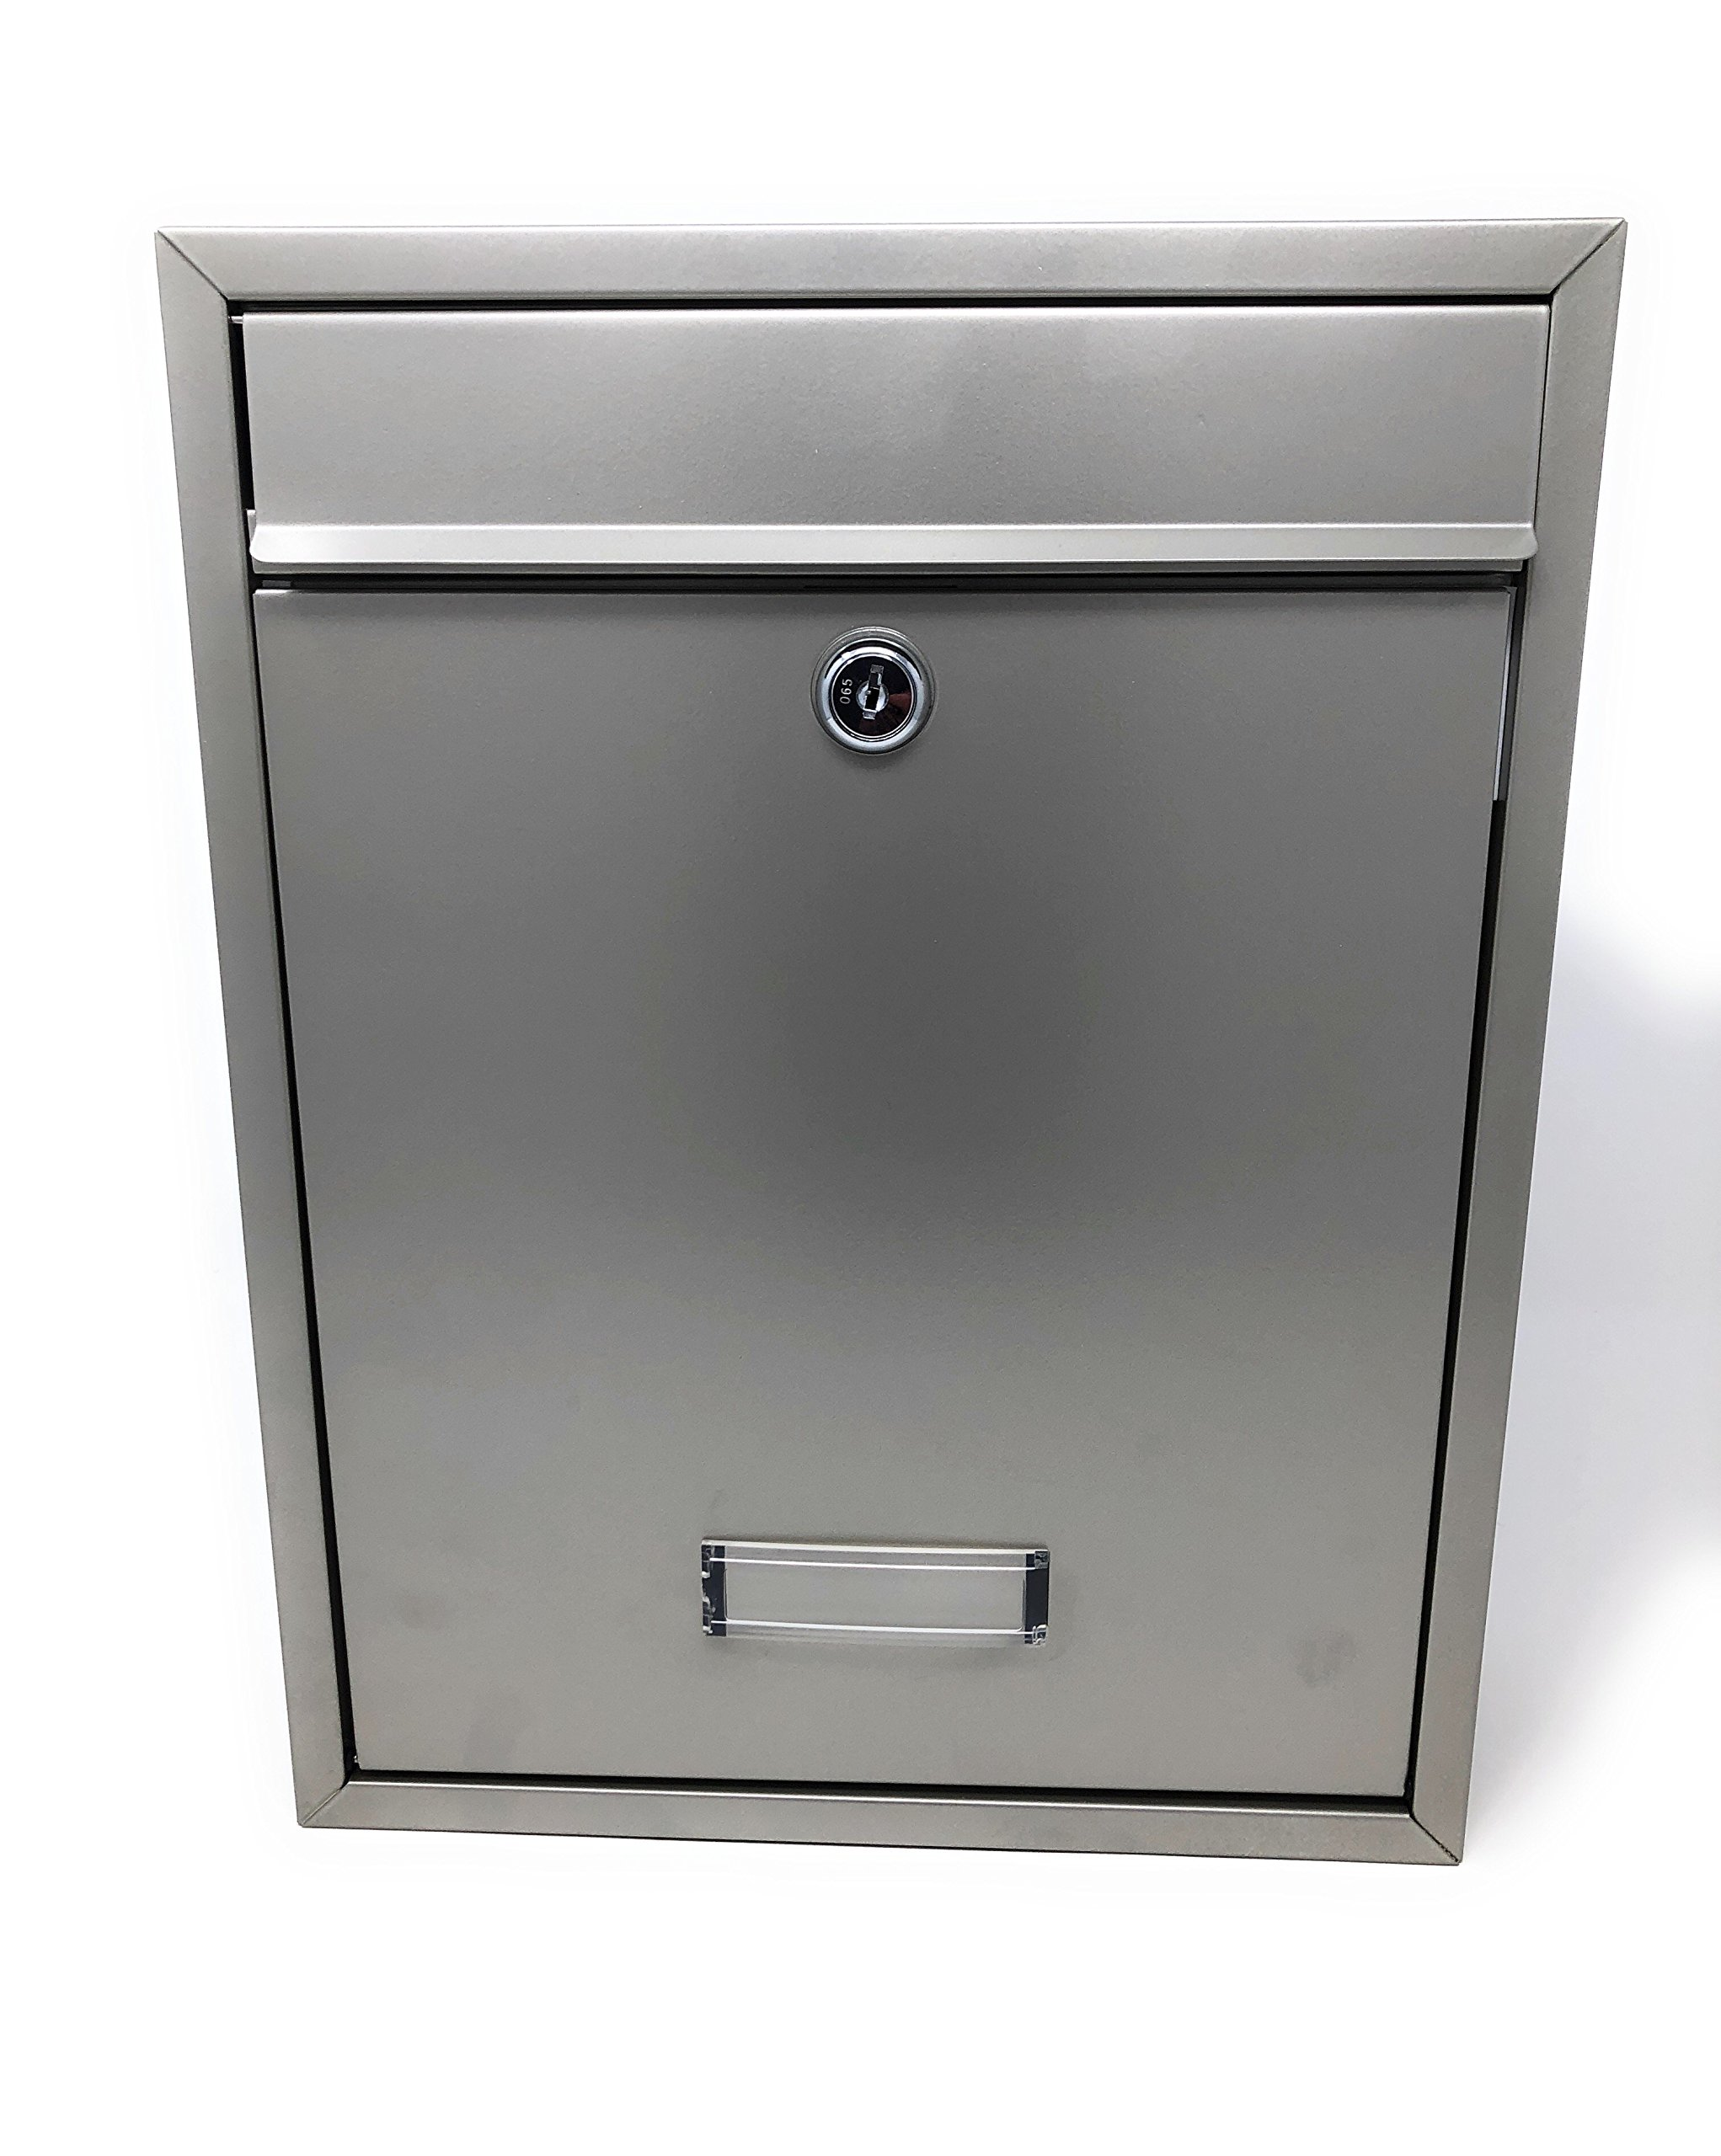 Gibraltar Locking Wall Mountable Mail Box, Payment-Suggestion Box Standard Compacity